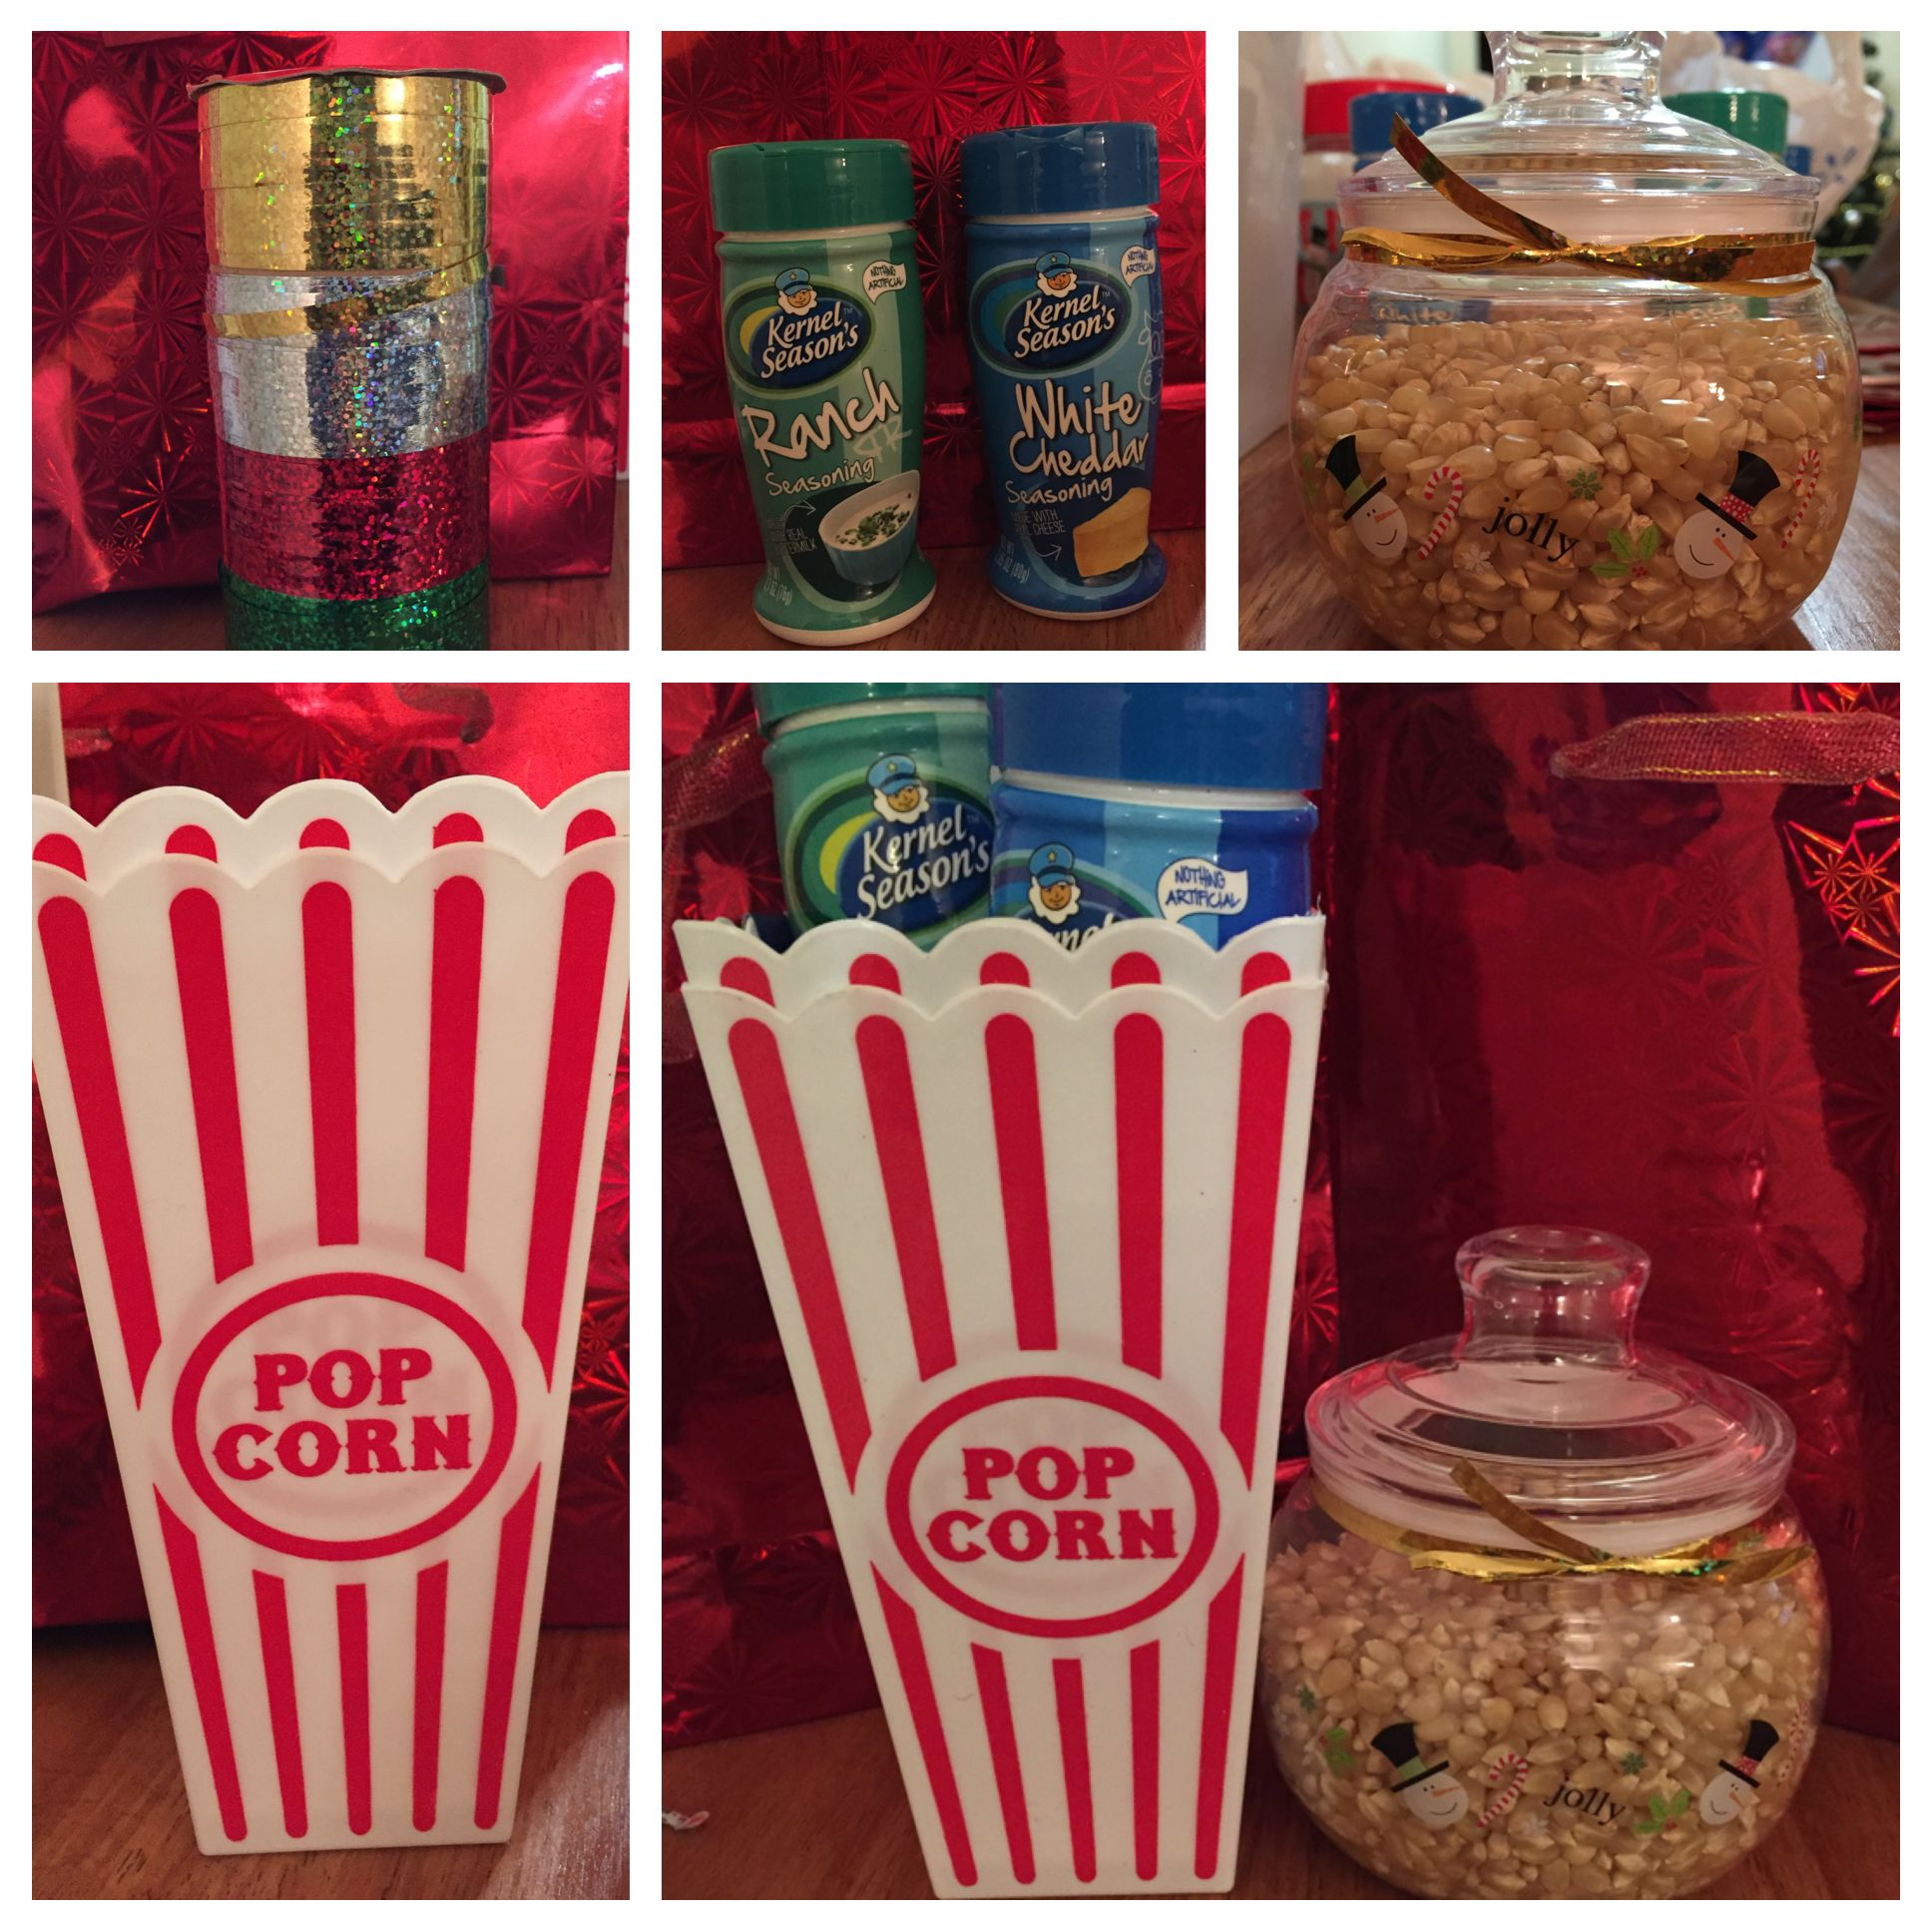 Christmas gift idea when on a budget popcorn kit